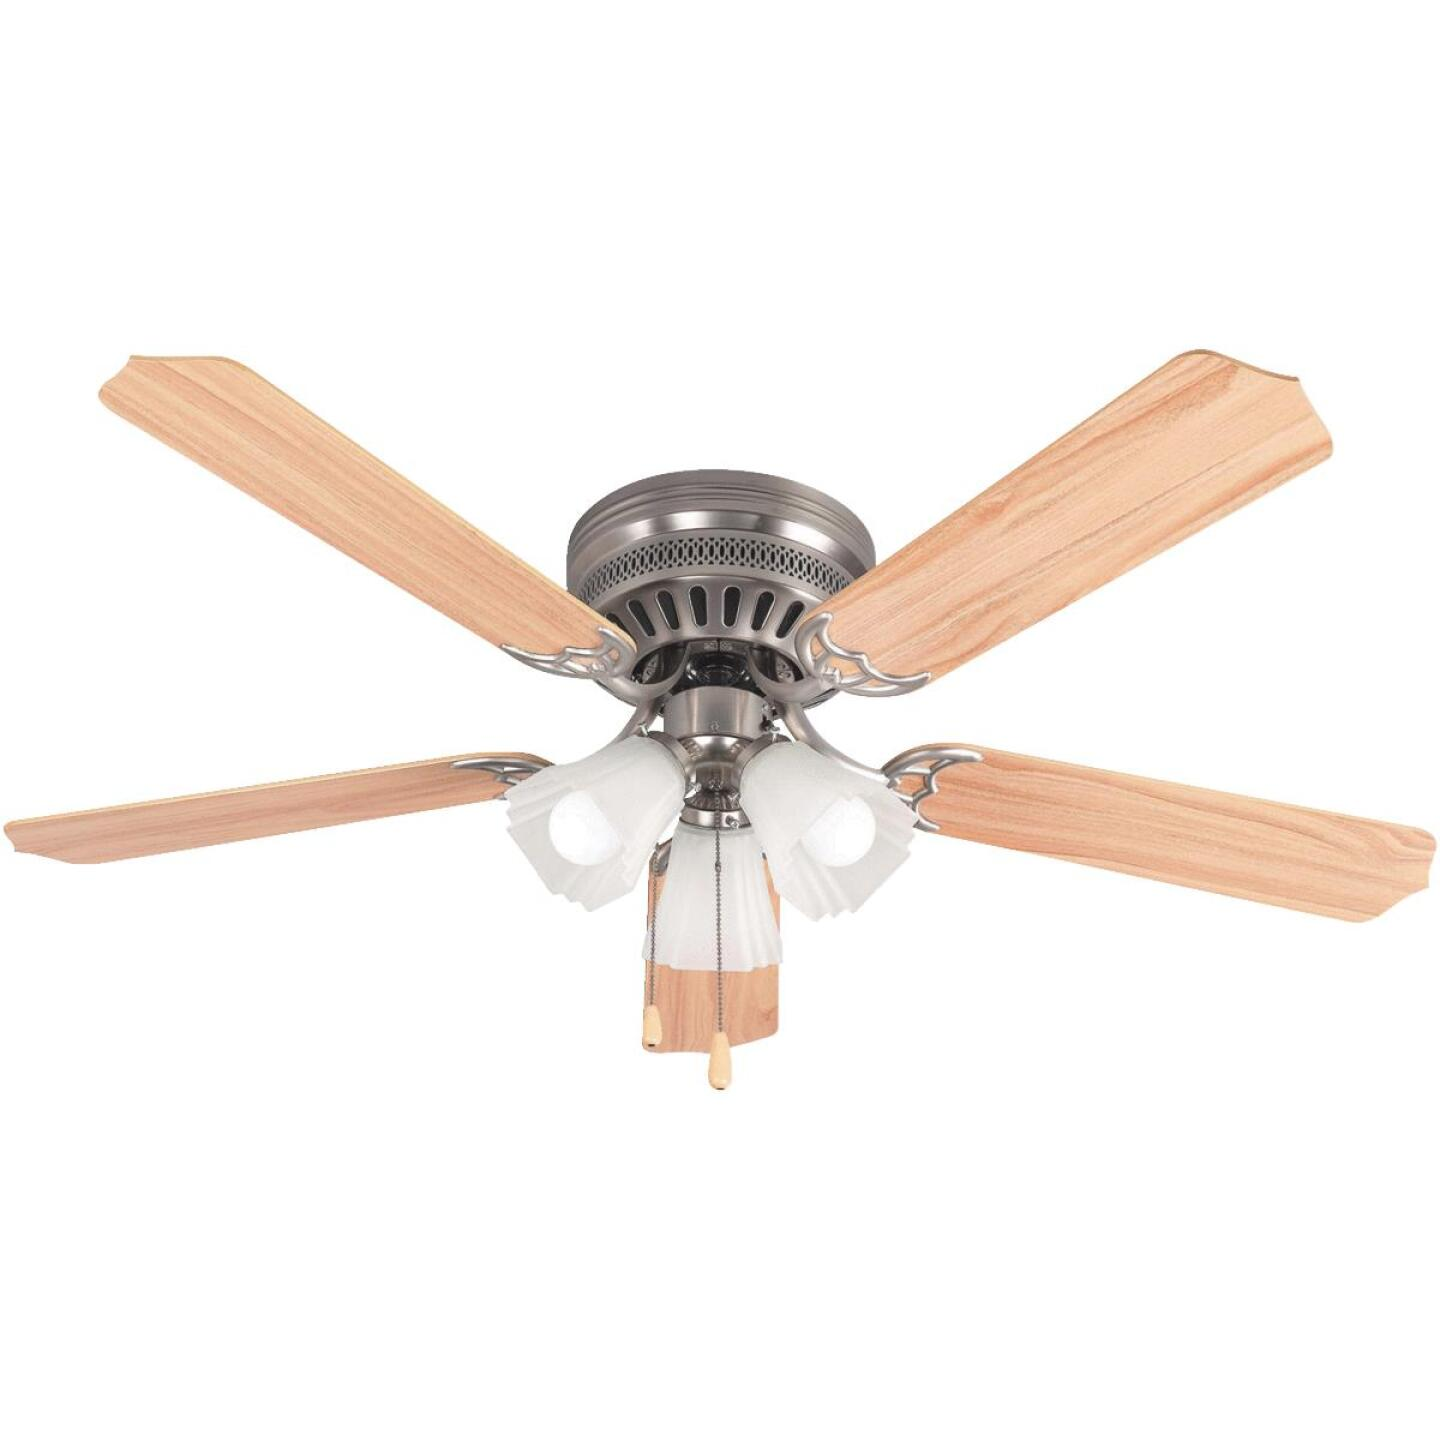 Home Impressions Piedmont 52 In. Brushed Nickel Ceiling Fan with Light Kit Image 1